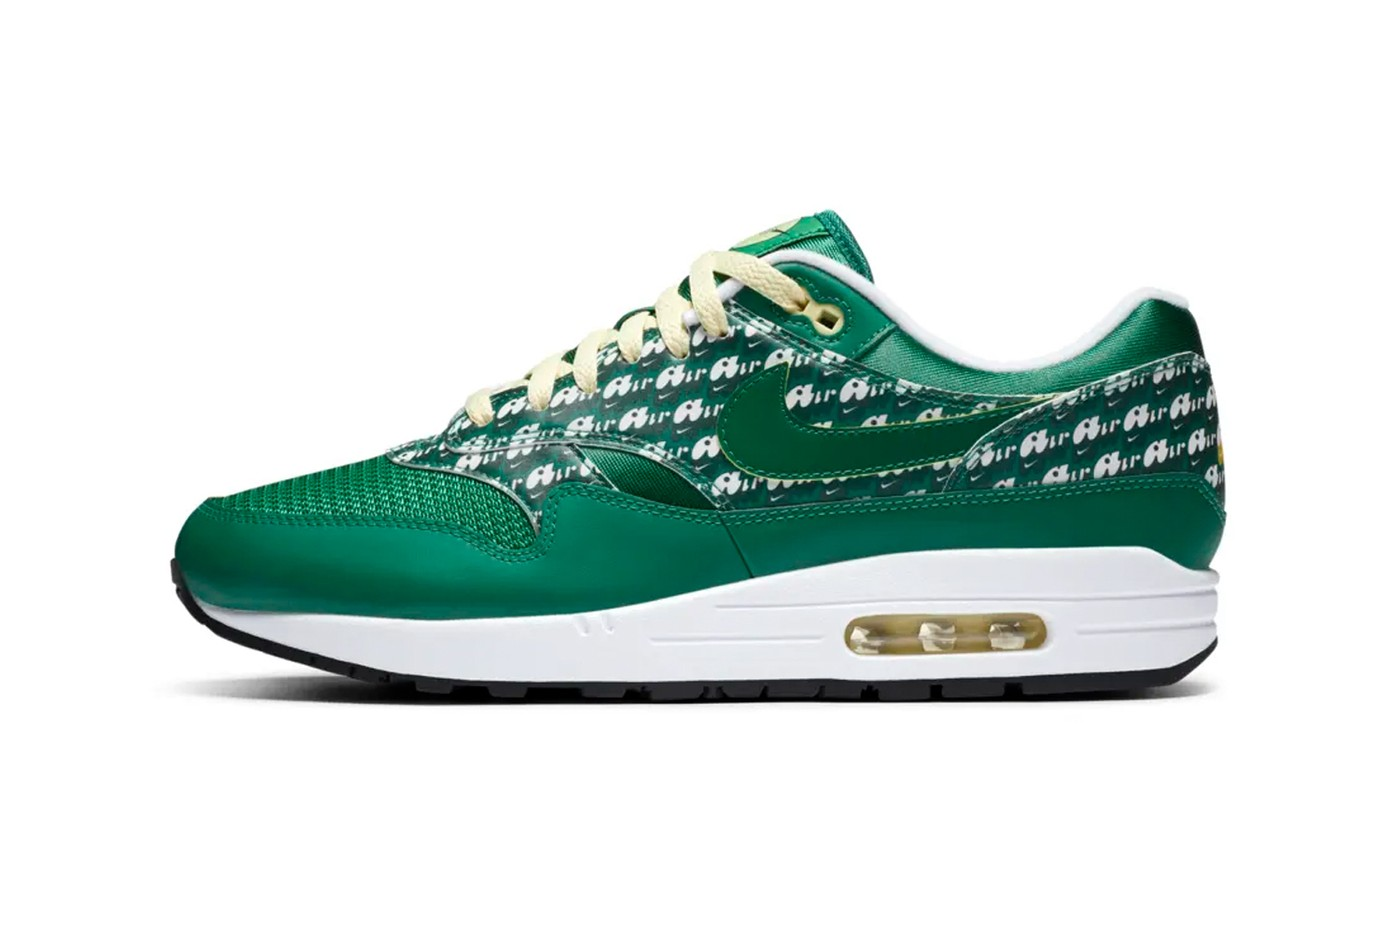 Nike Air Max 1 Powerwall Limeade实拍图